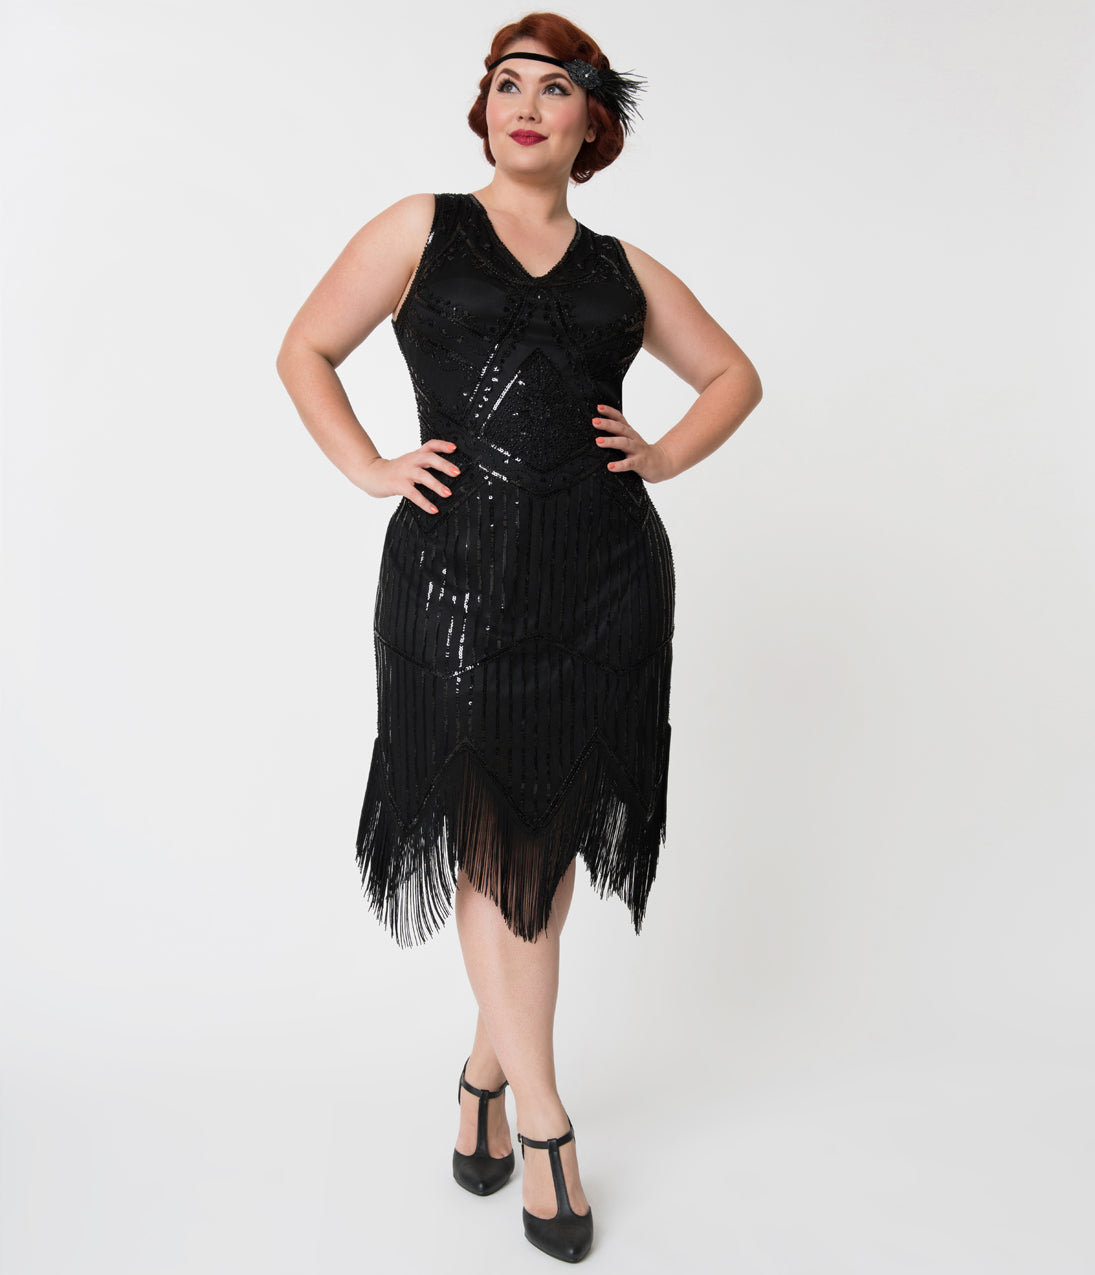 50 Vintage Halloween Costume Ideas Unique Vintage Plus Size 1920S Black Beaded Sequin Juliette Fringe Flapper Dress $68.00 AT vintagedancer.com